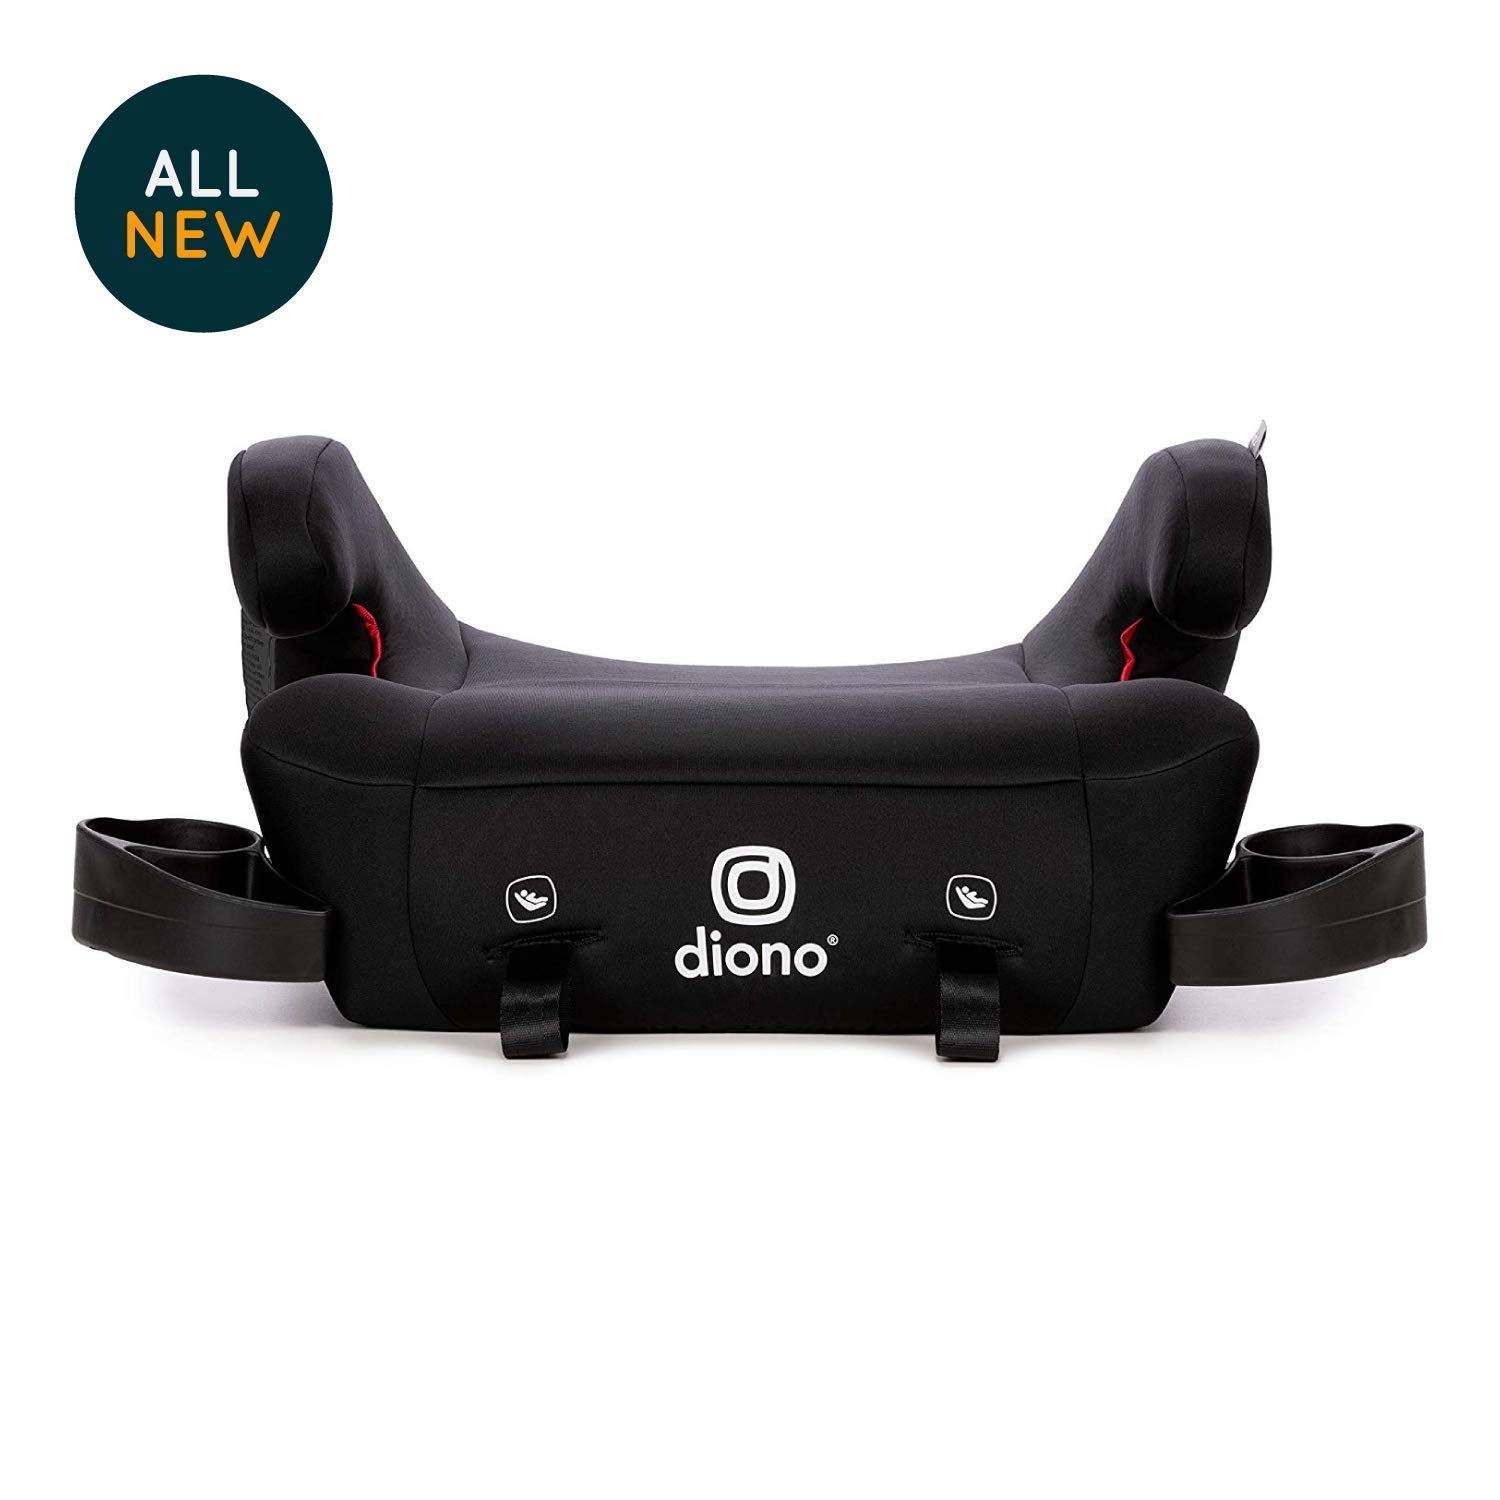 Diono Solana 2 No-Back Child Booster Seat, Black